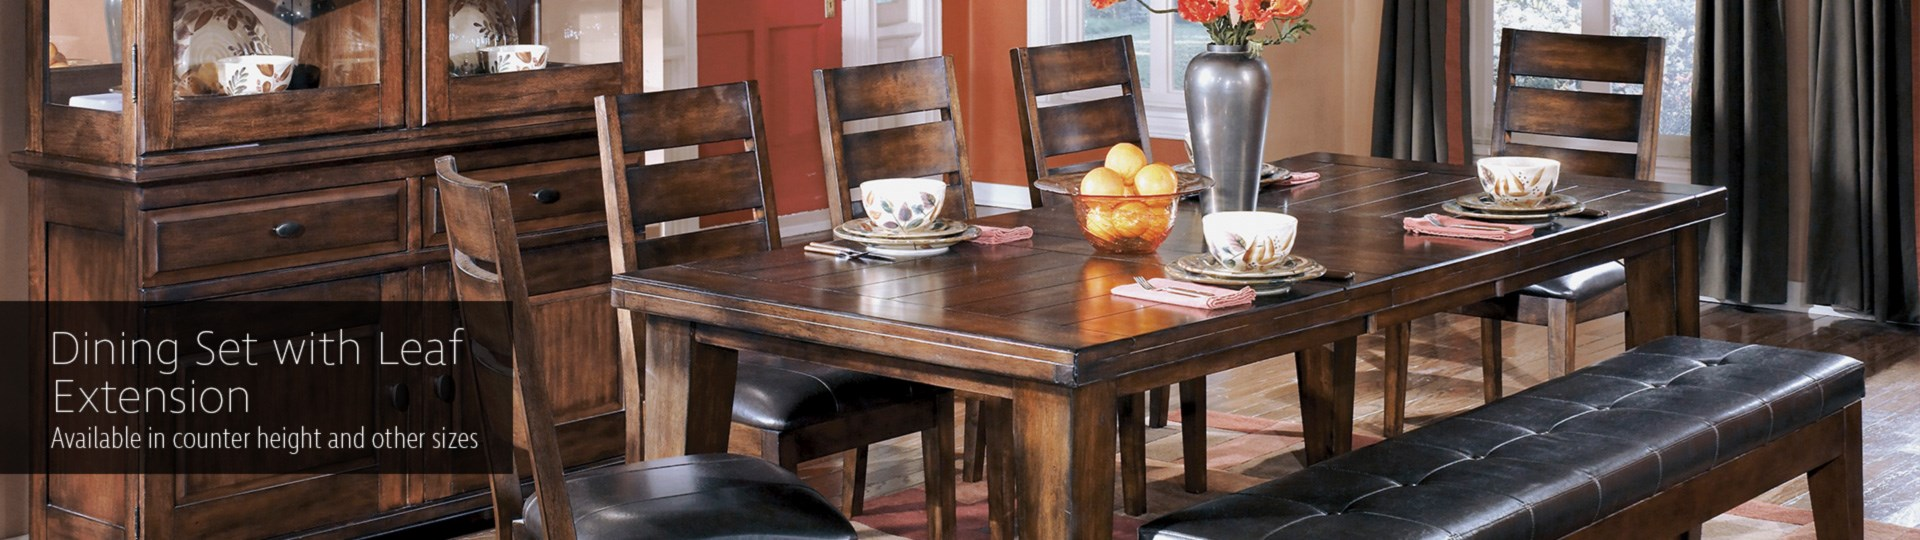 Ashley D442 Larchmont Dining Table, Chairs and Bench